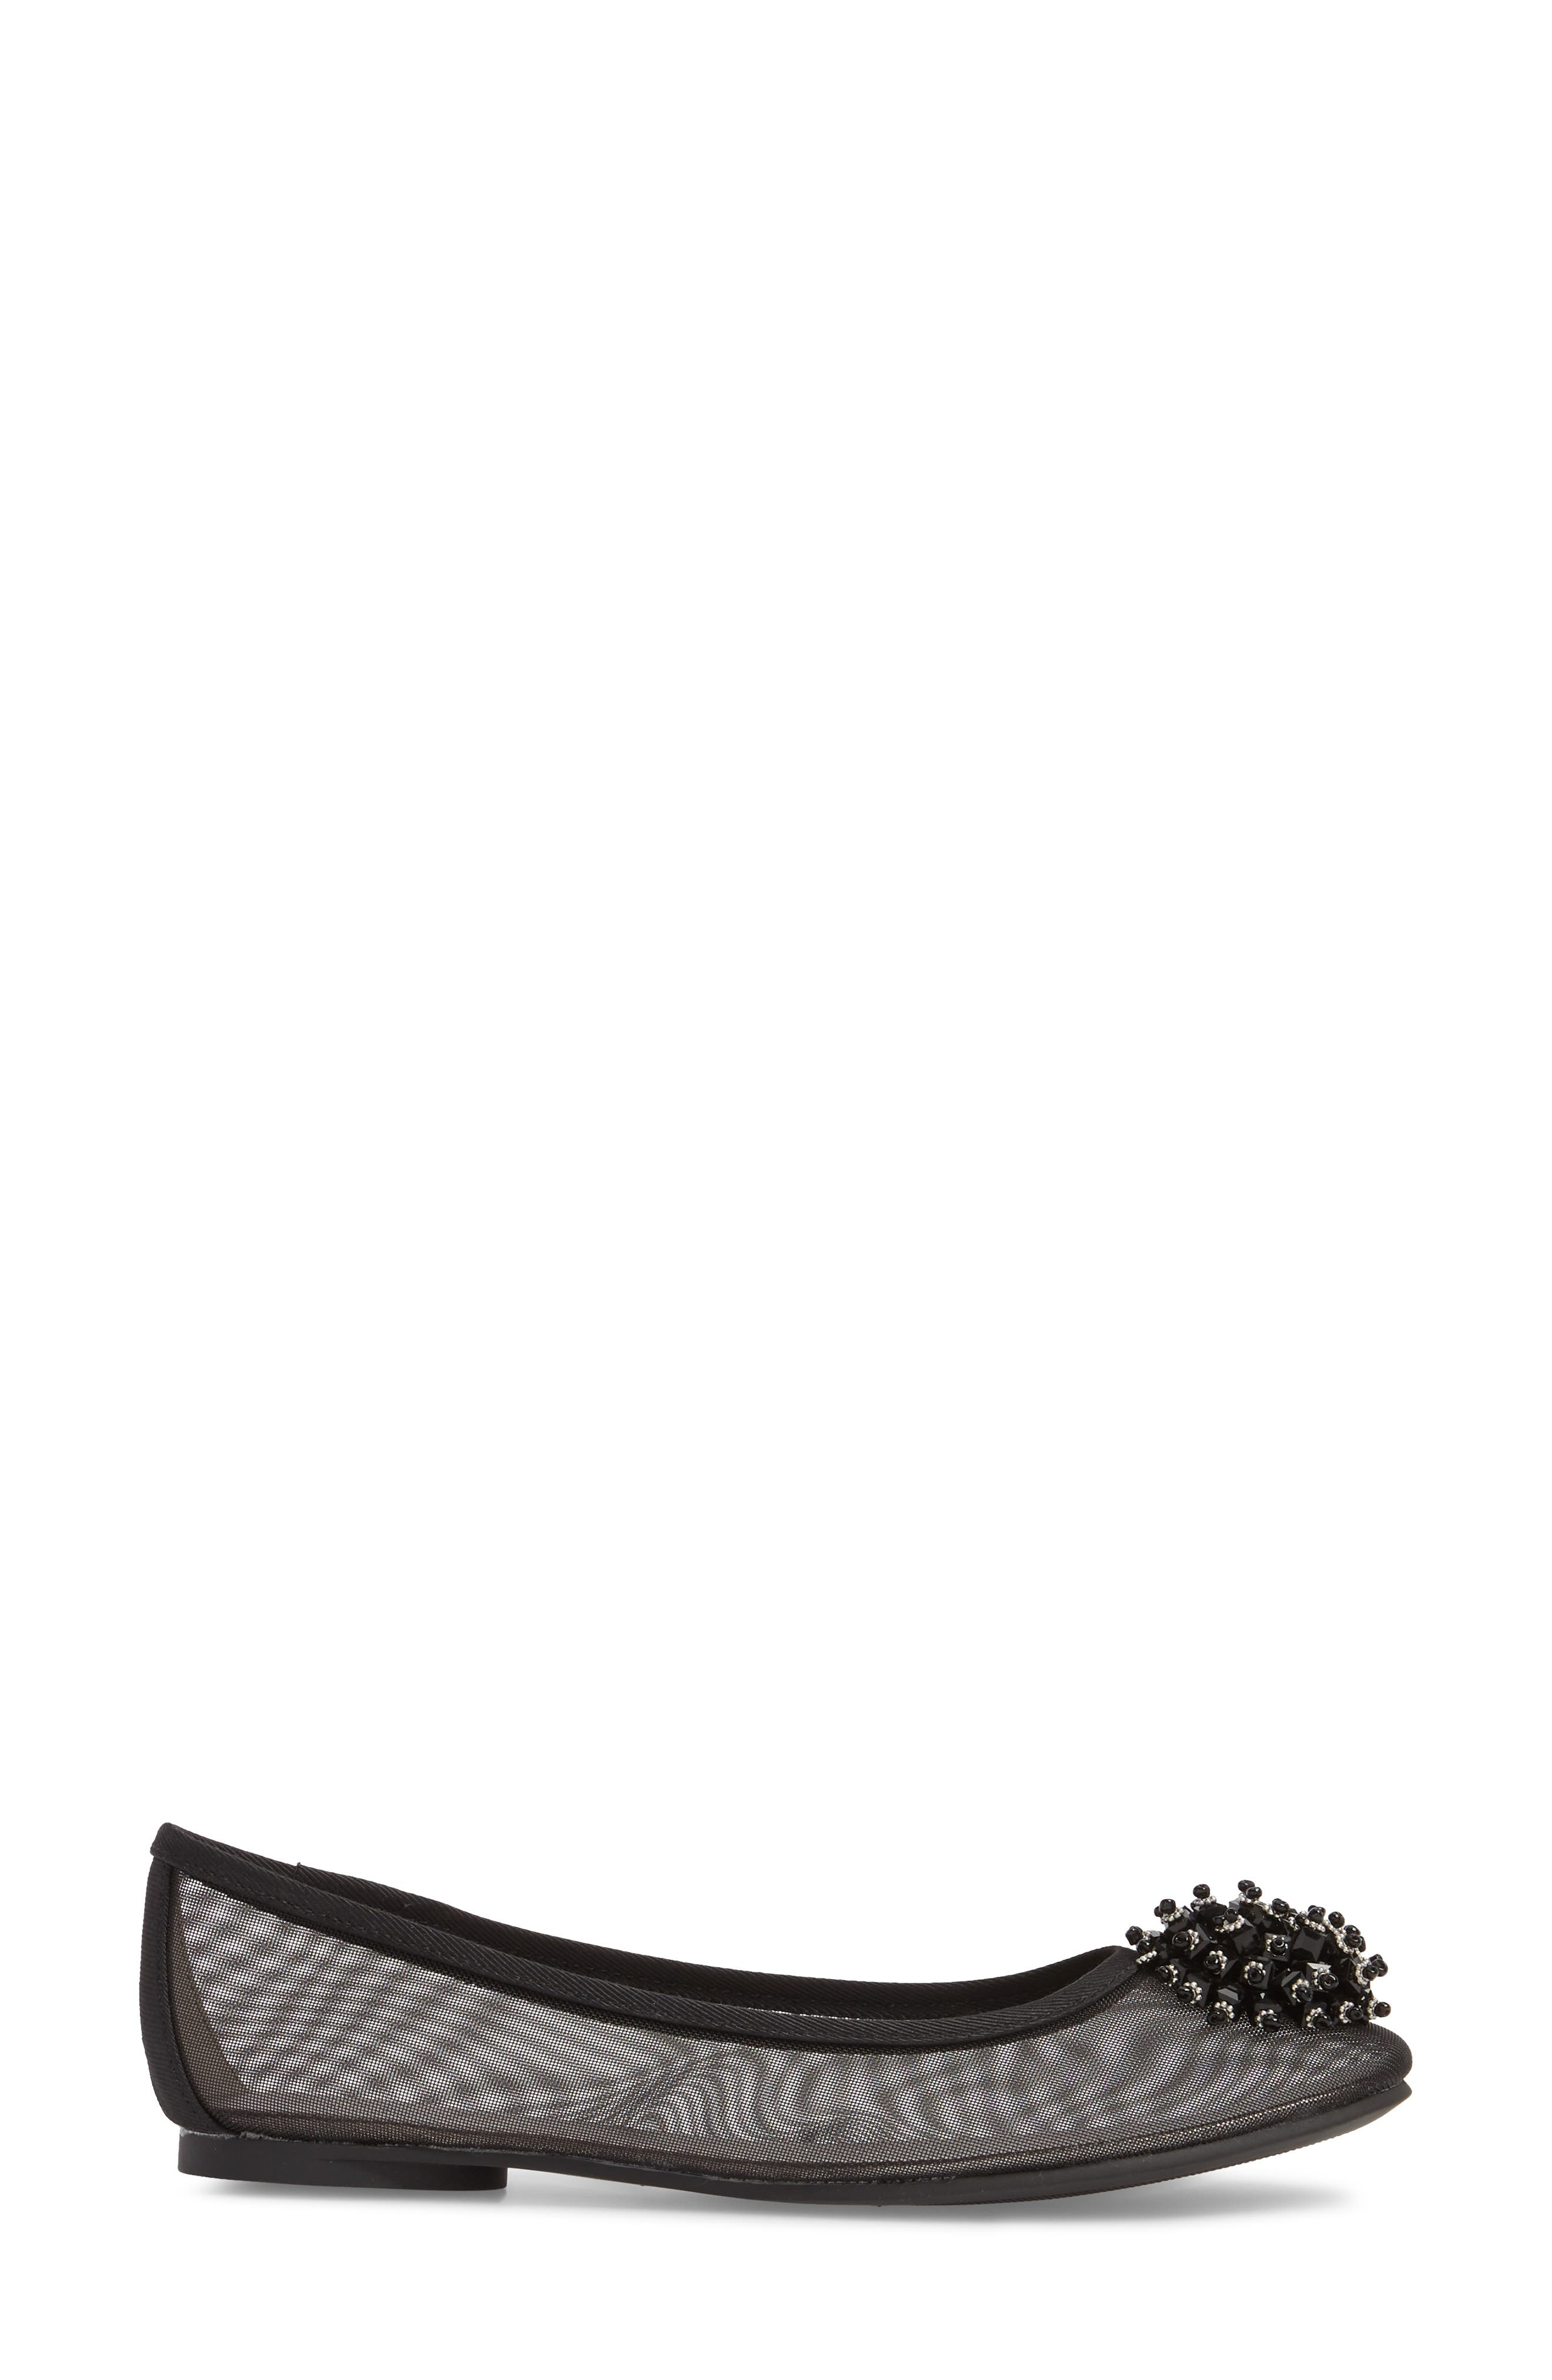 ADRIANNA PAPELL,                             Stevie Embellished Flat,                             Alternate thumbnail 3, color,                             001